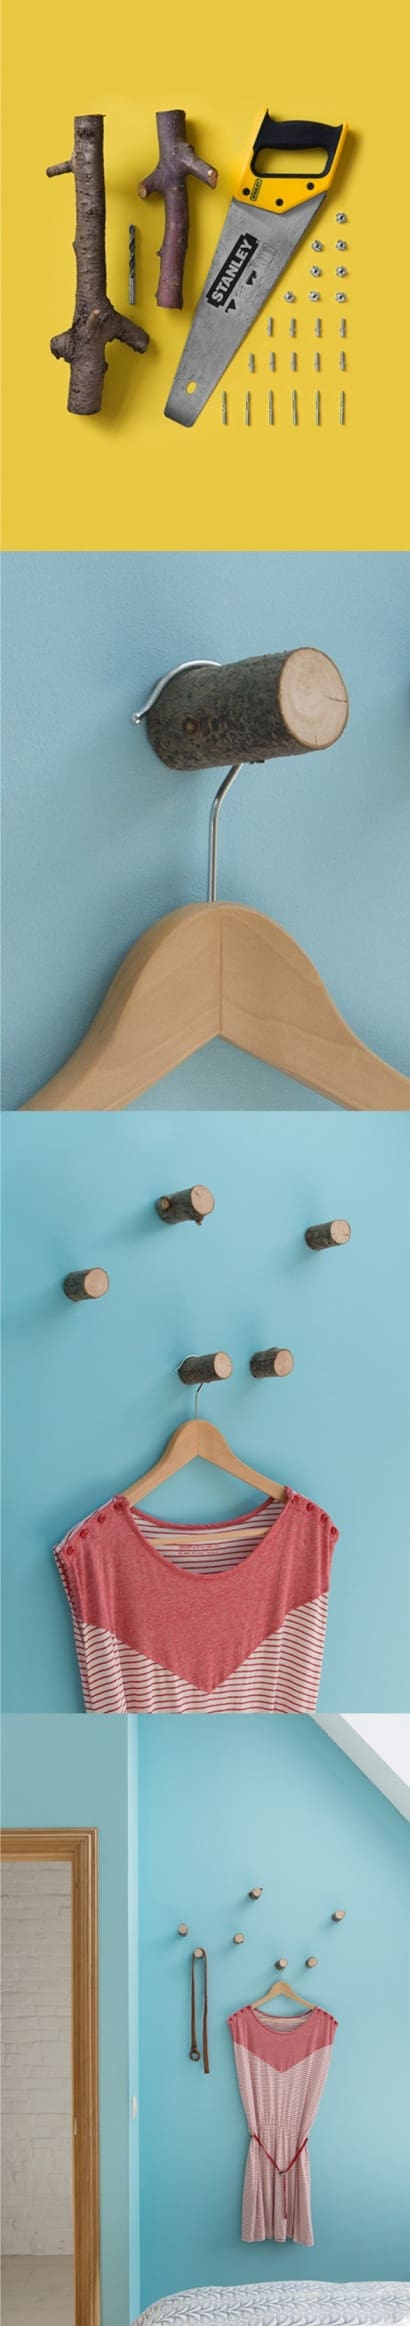 DIY: Hangers from small wood logs